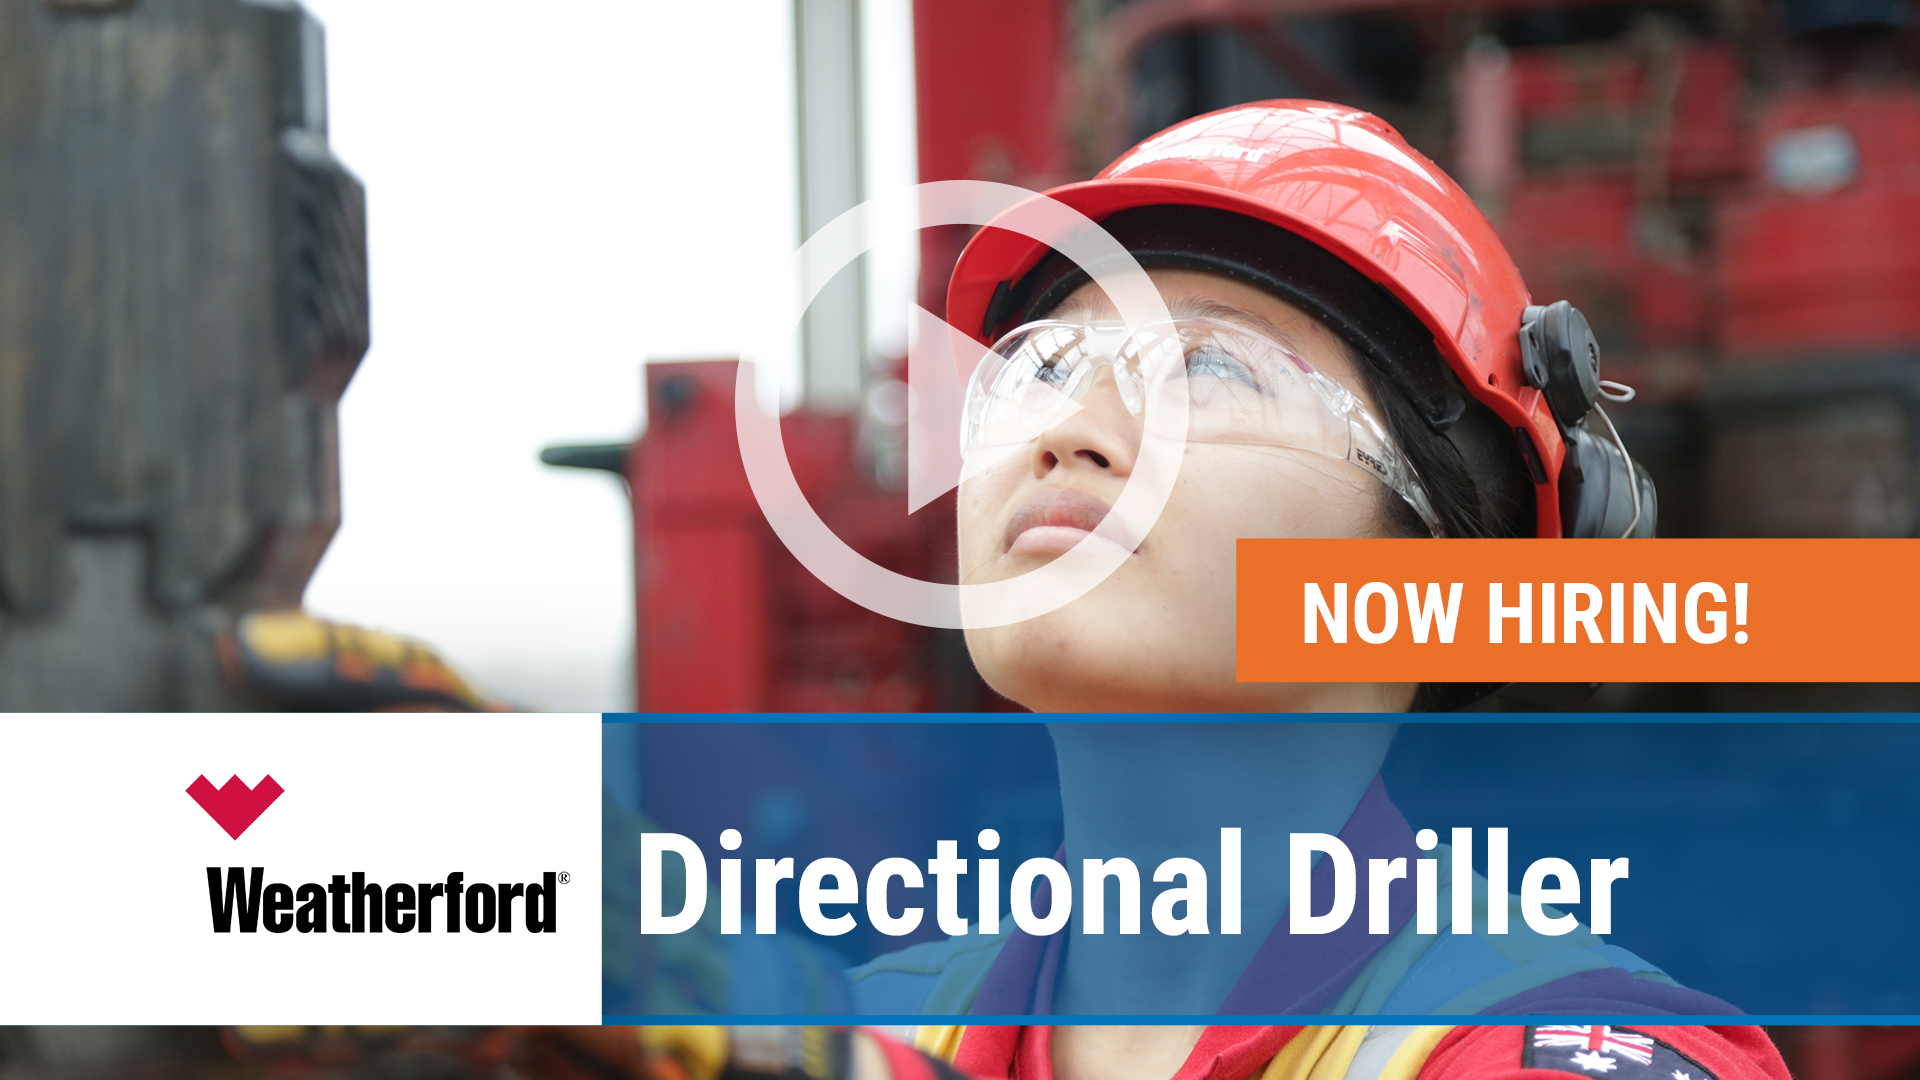 Watch our careers video for available job opening Directional Driller in Oklahoma City, OK